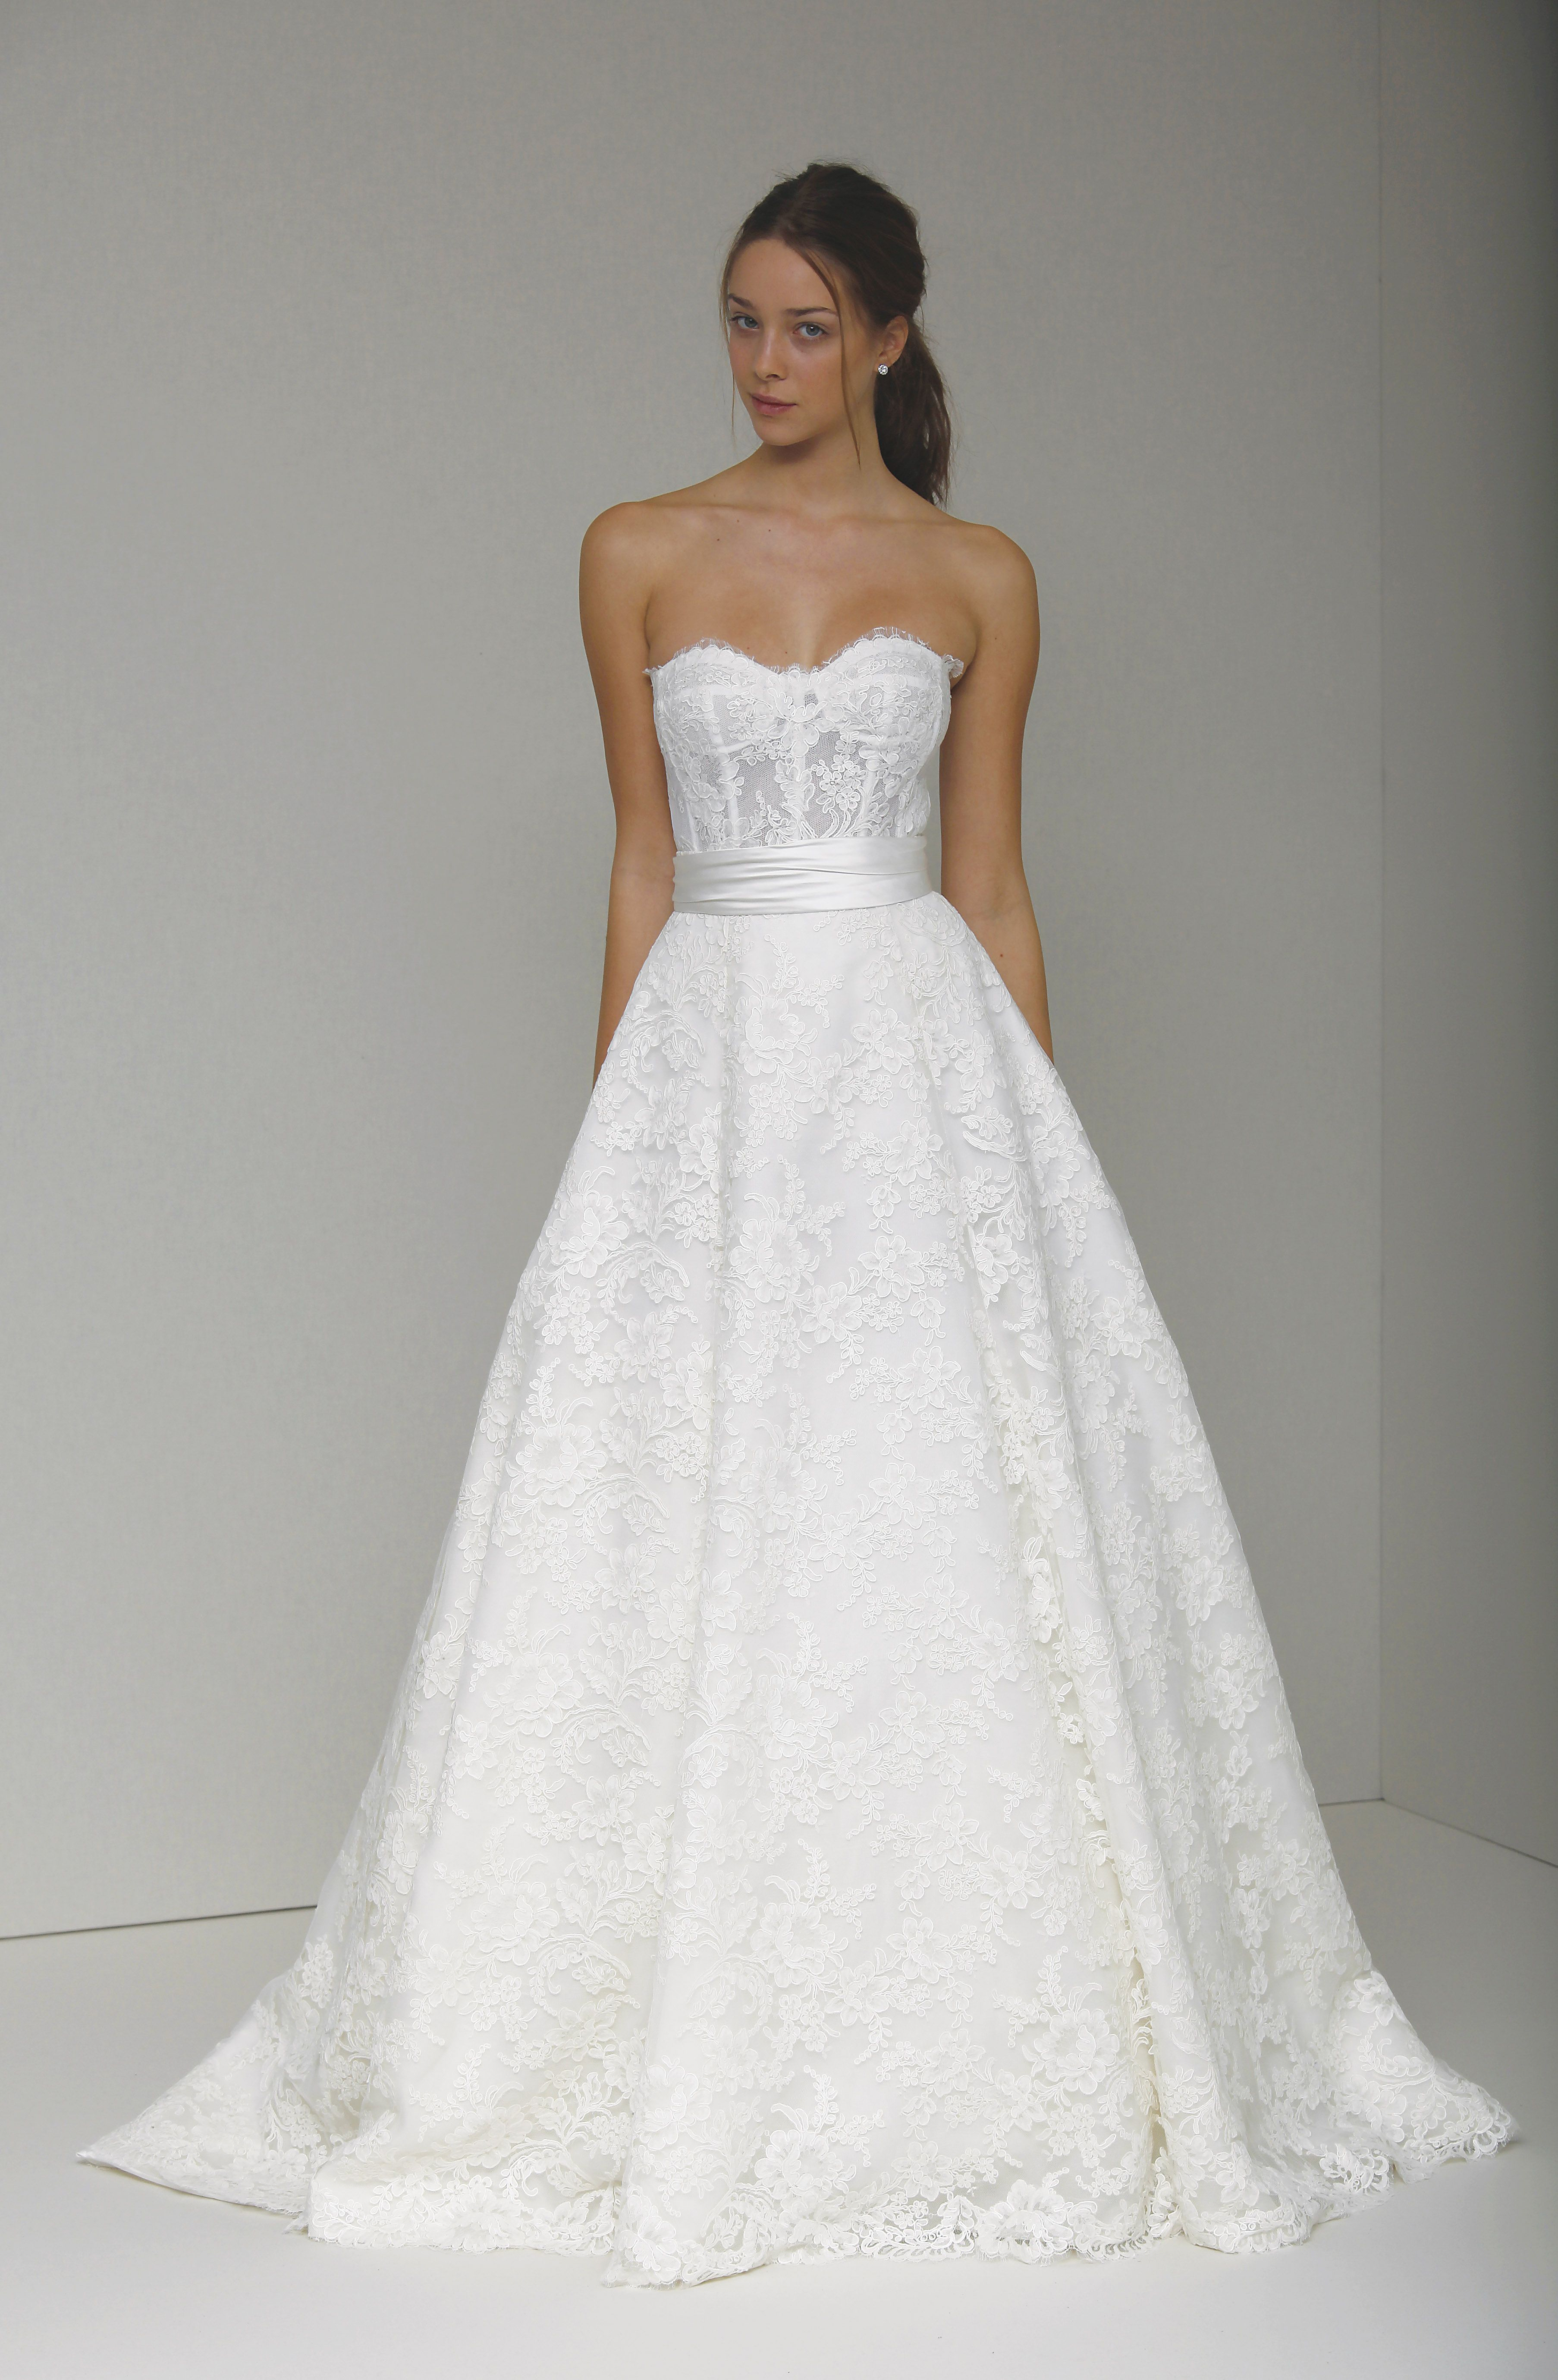 Monique Lhuillier Augustine The Plumed Serpent Bridal Carrie Underwood Wedding Dress Wedding Dresses Strapless Bridal Gowns